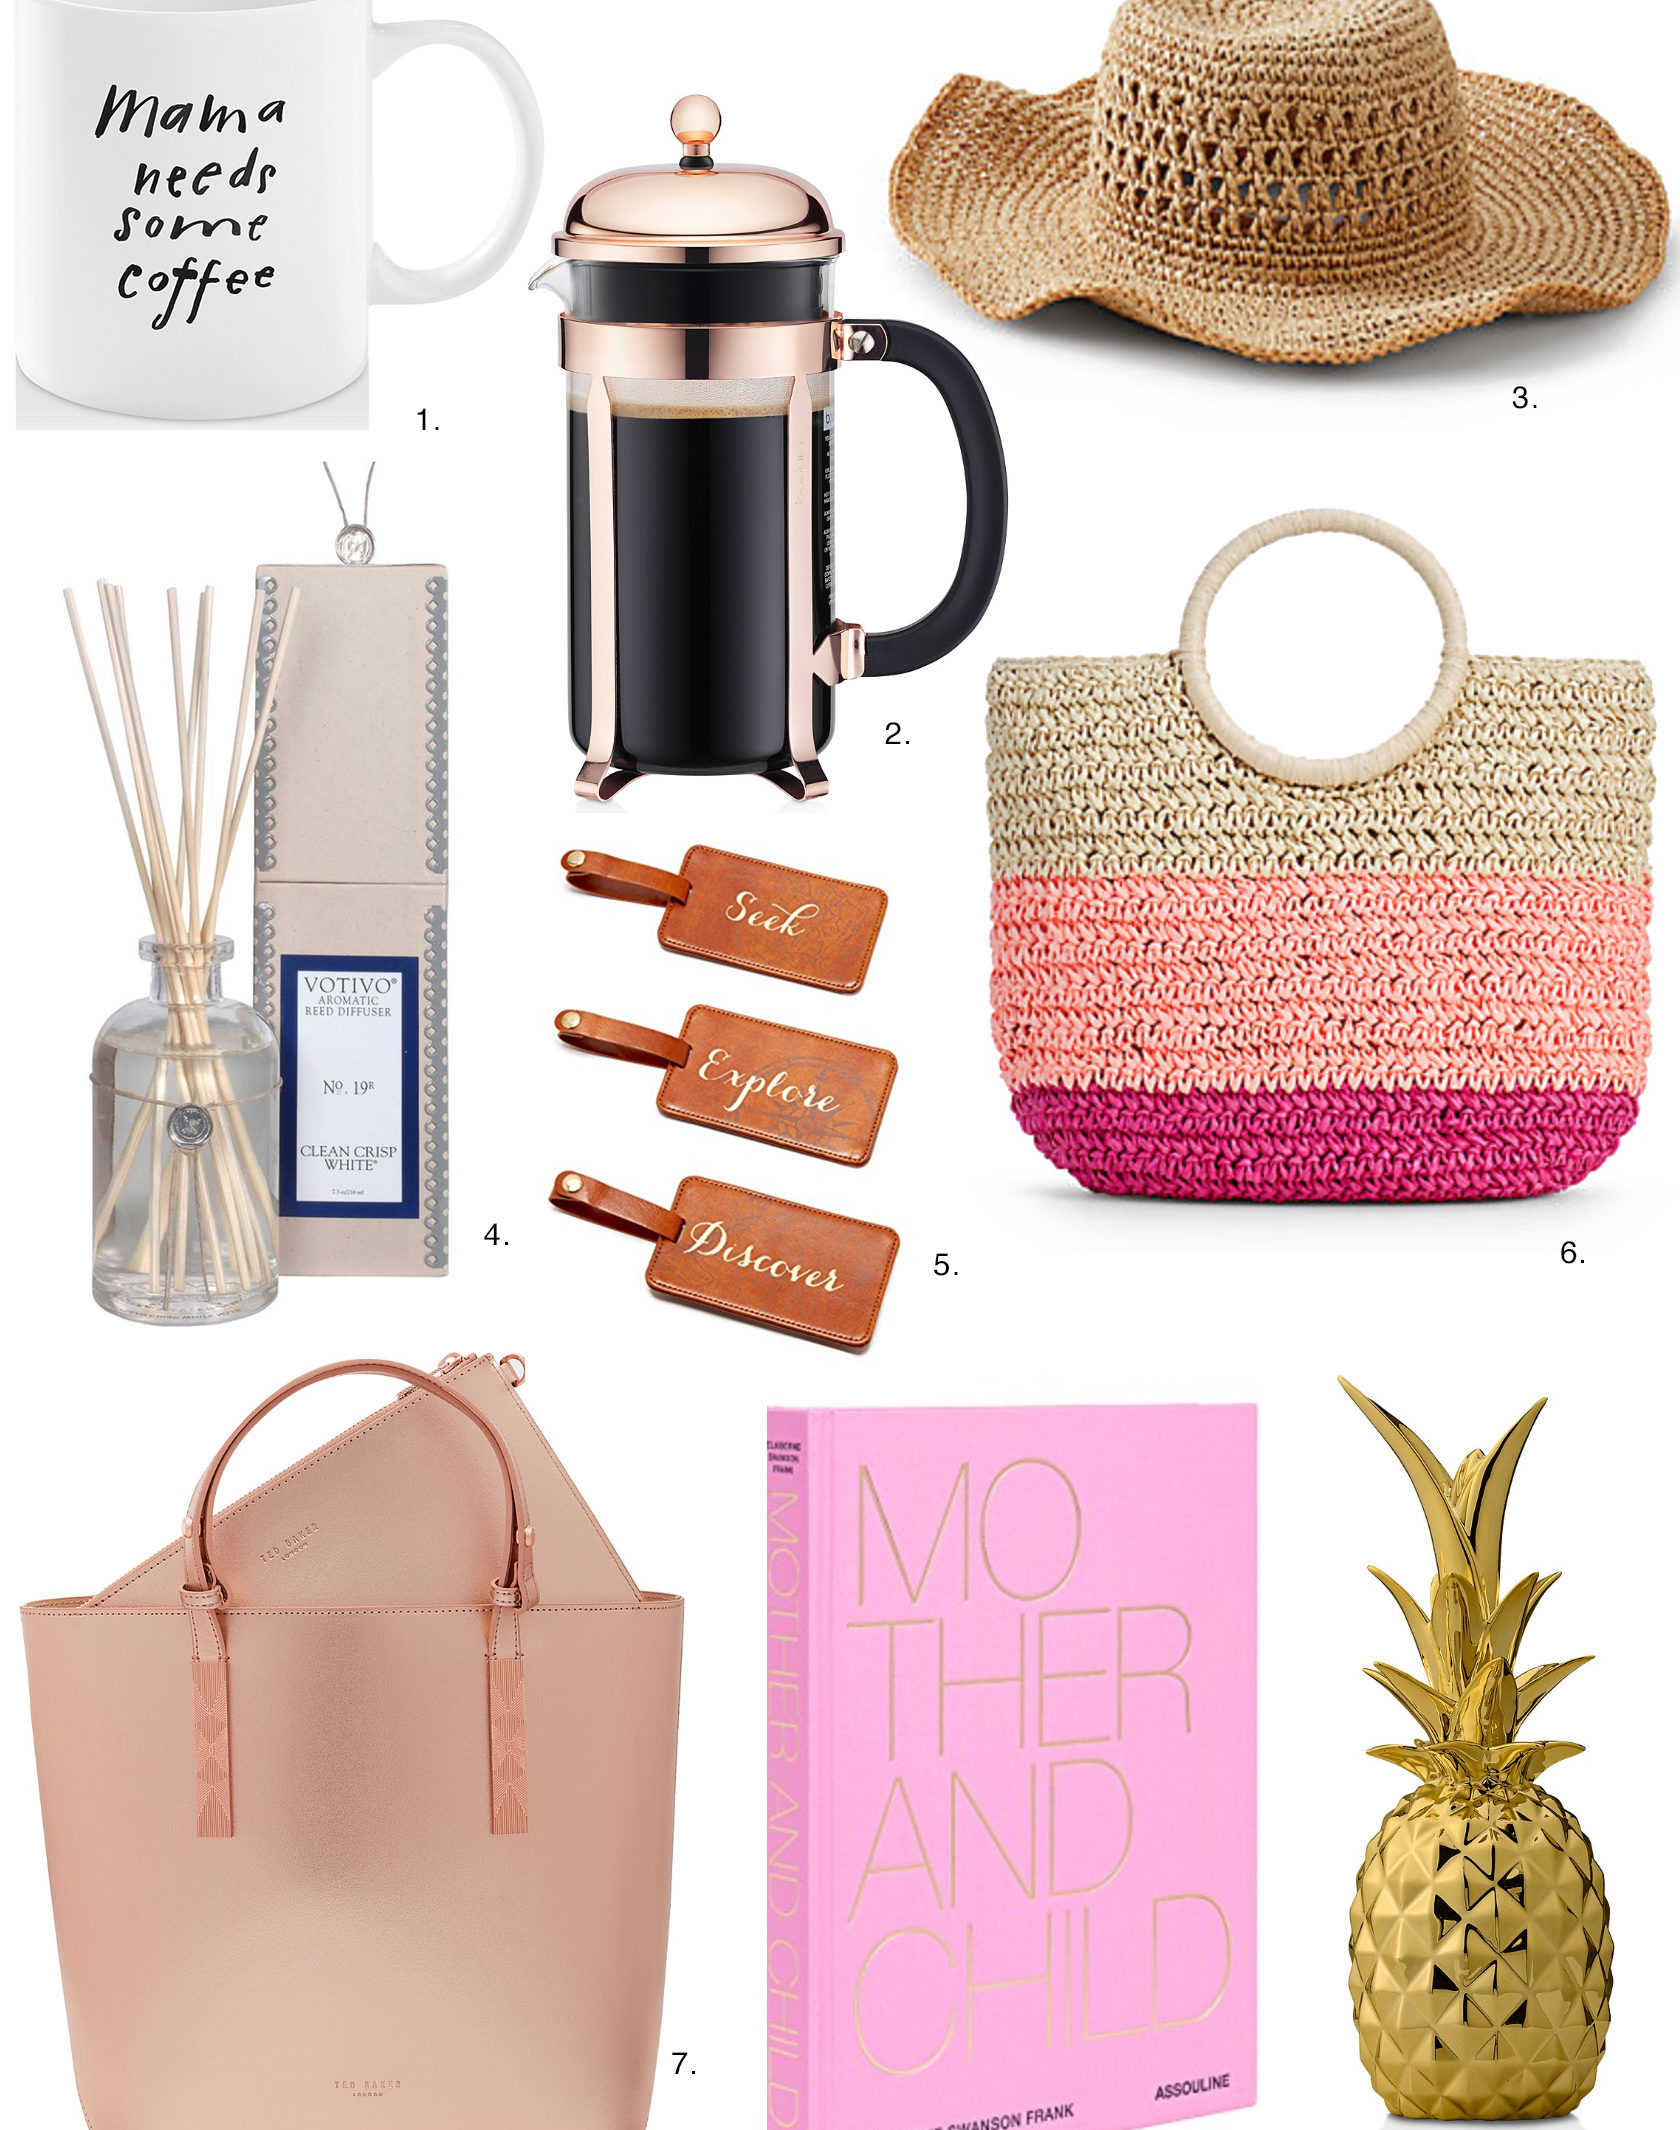 Sydne Style rounds up mothers day gift ideas with online coupon codes for shopping sales